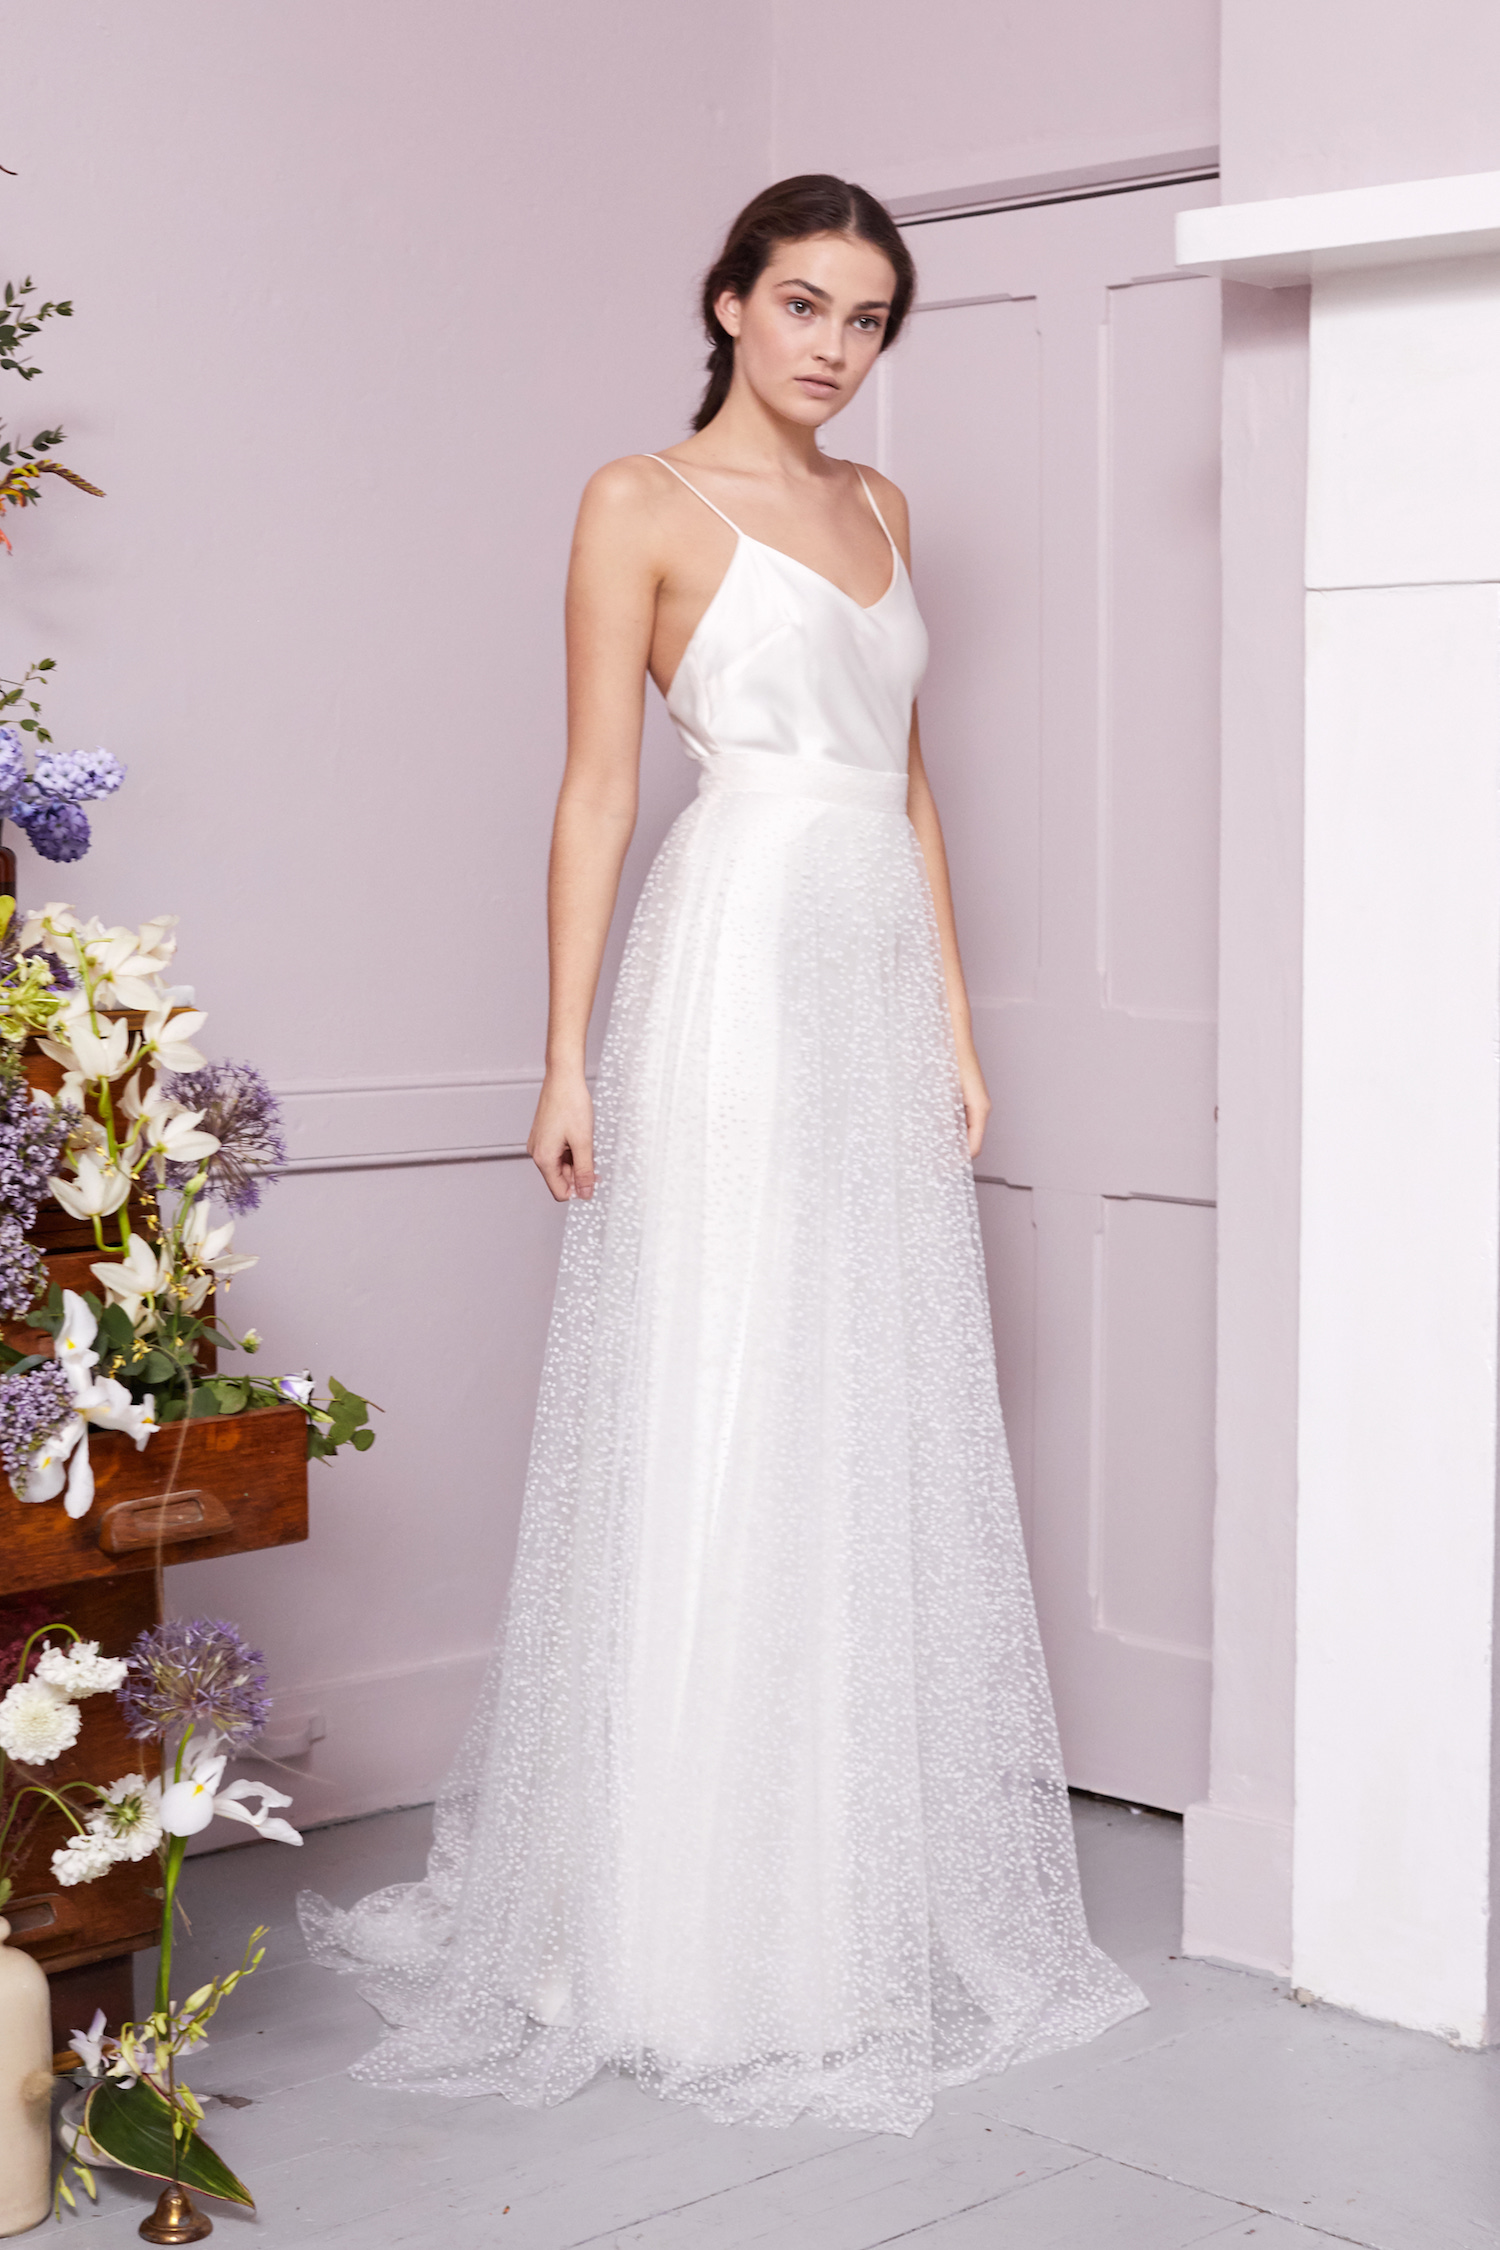 SCOTTY SKIRT & IRIS SLIP | WEDDING DRESS BY HALFPENNY LONDON